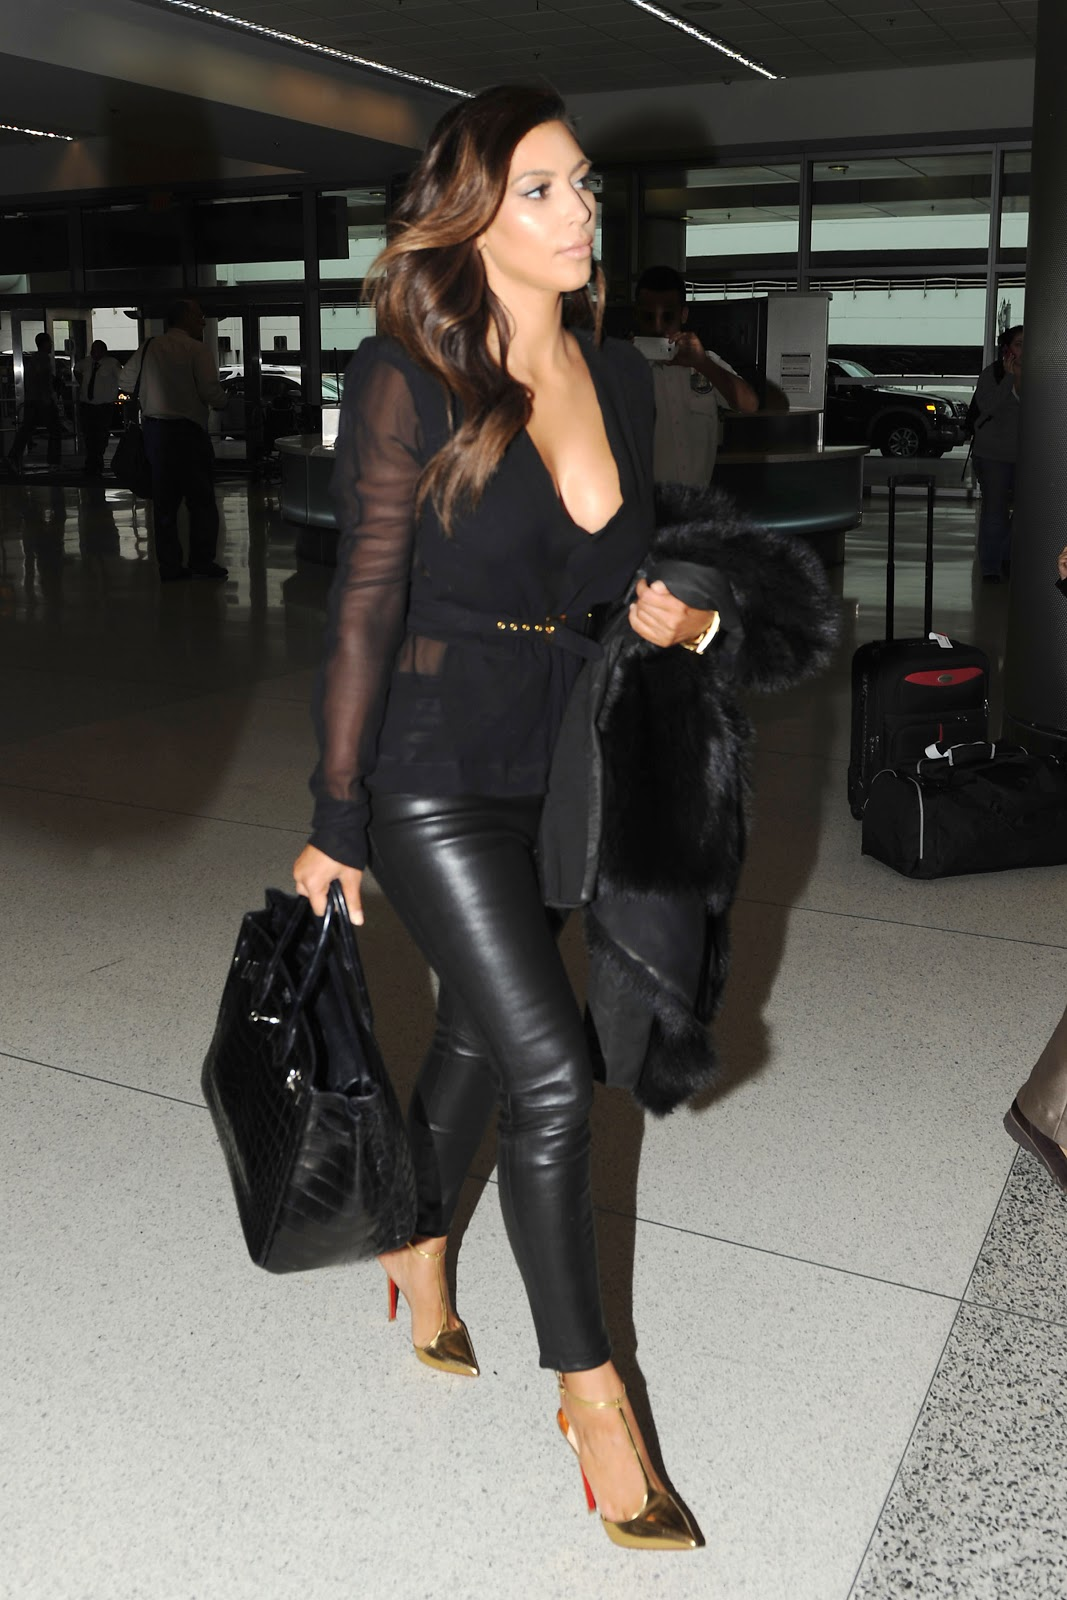 http://3.bp.blogspot.com/-yNP5Y5ch7A8/UIB4wEztAiI/AAAAAAAAUNs/VjEfZIP1wfs/s1600/Kim+Kardashian+arriving+at+Miami+Airport+October+17th+2012+-10.jpg